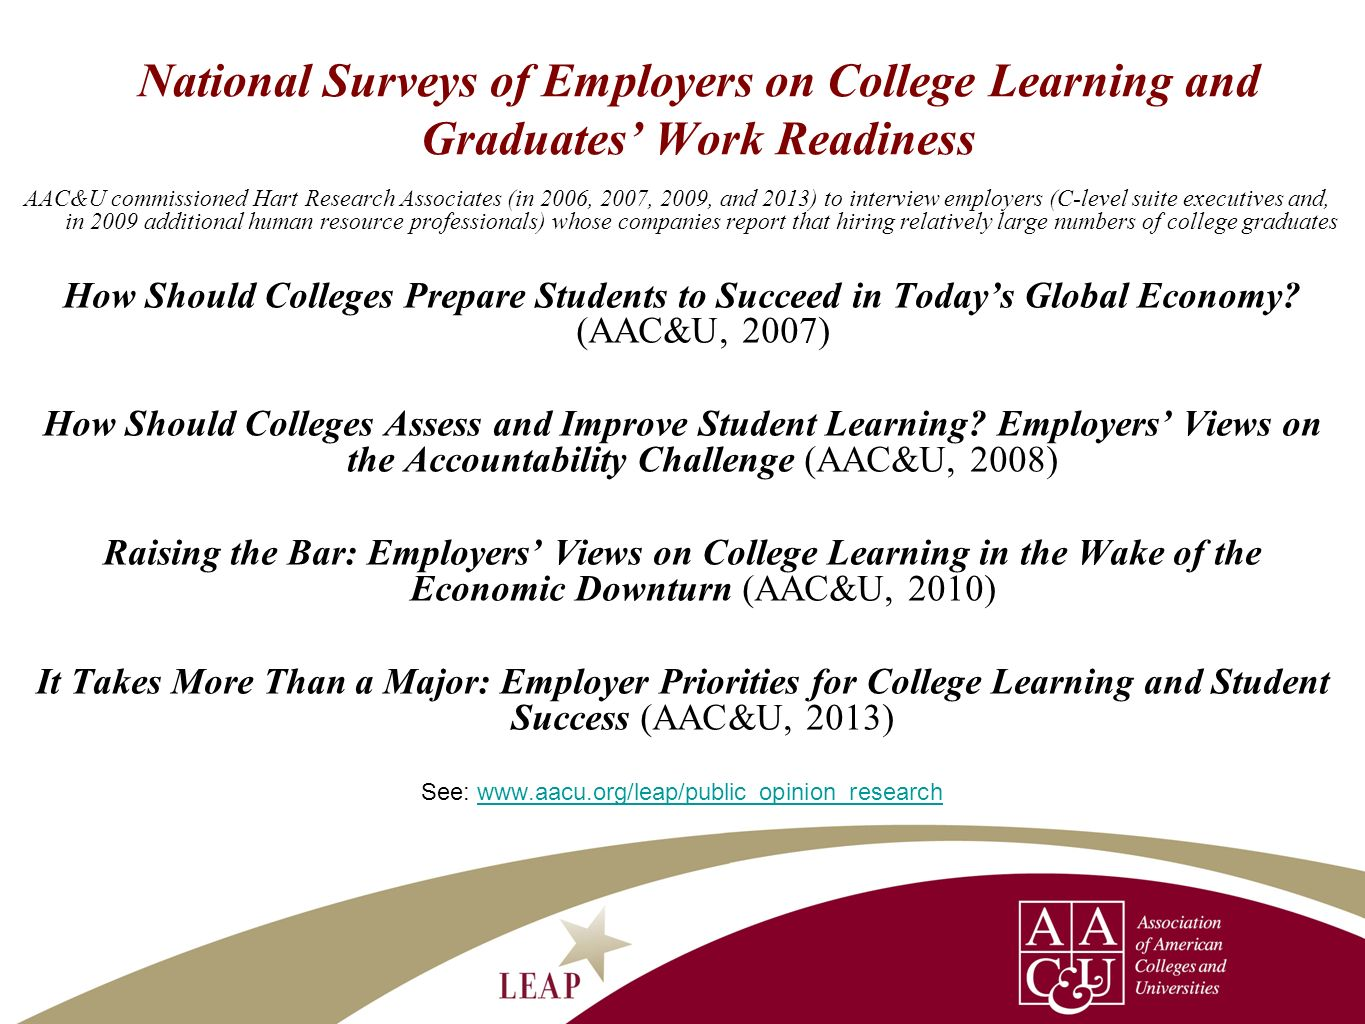 See: www.aacu.org/leap/public_opinion_research